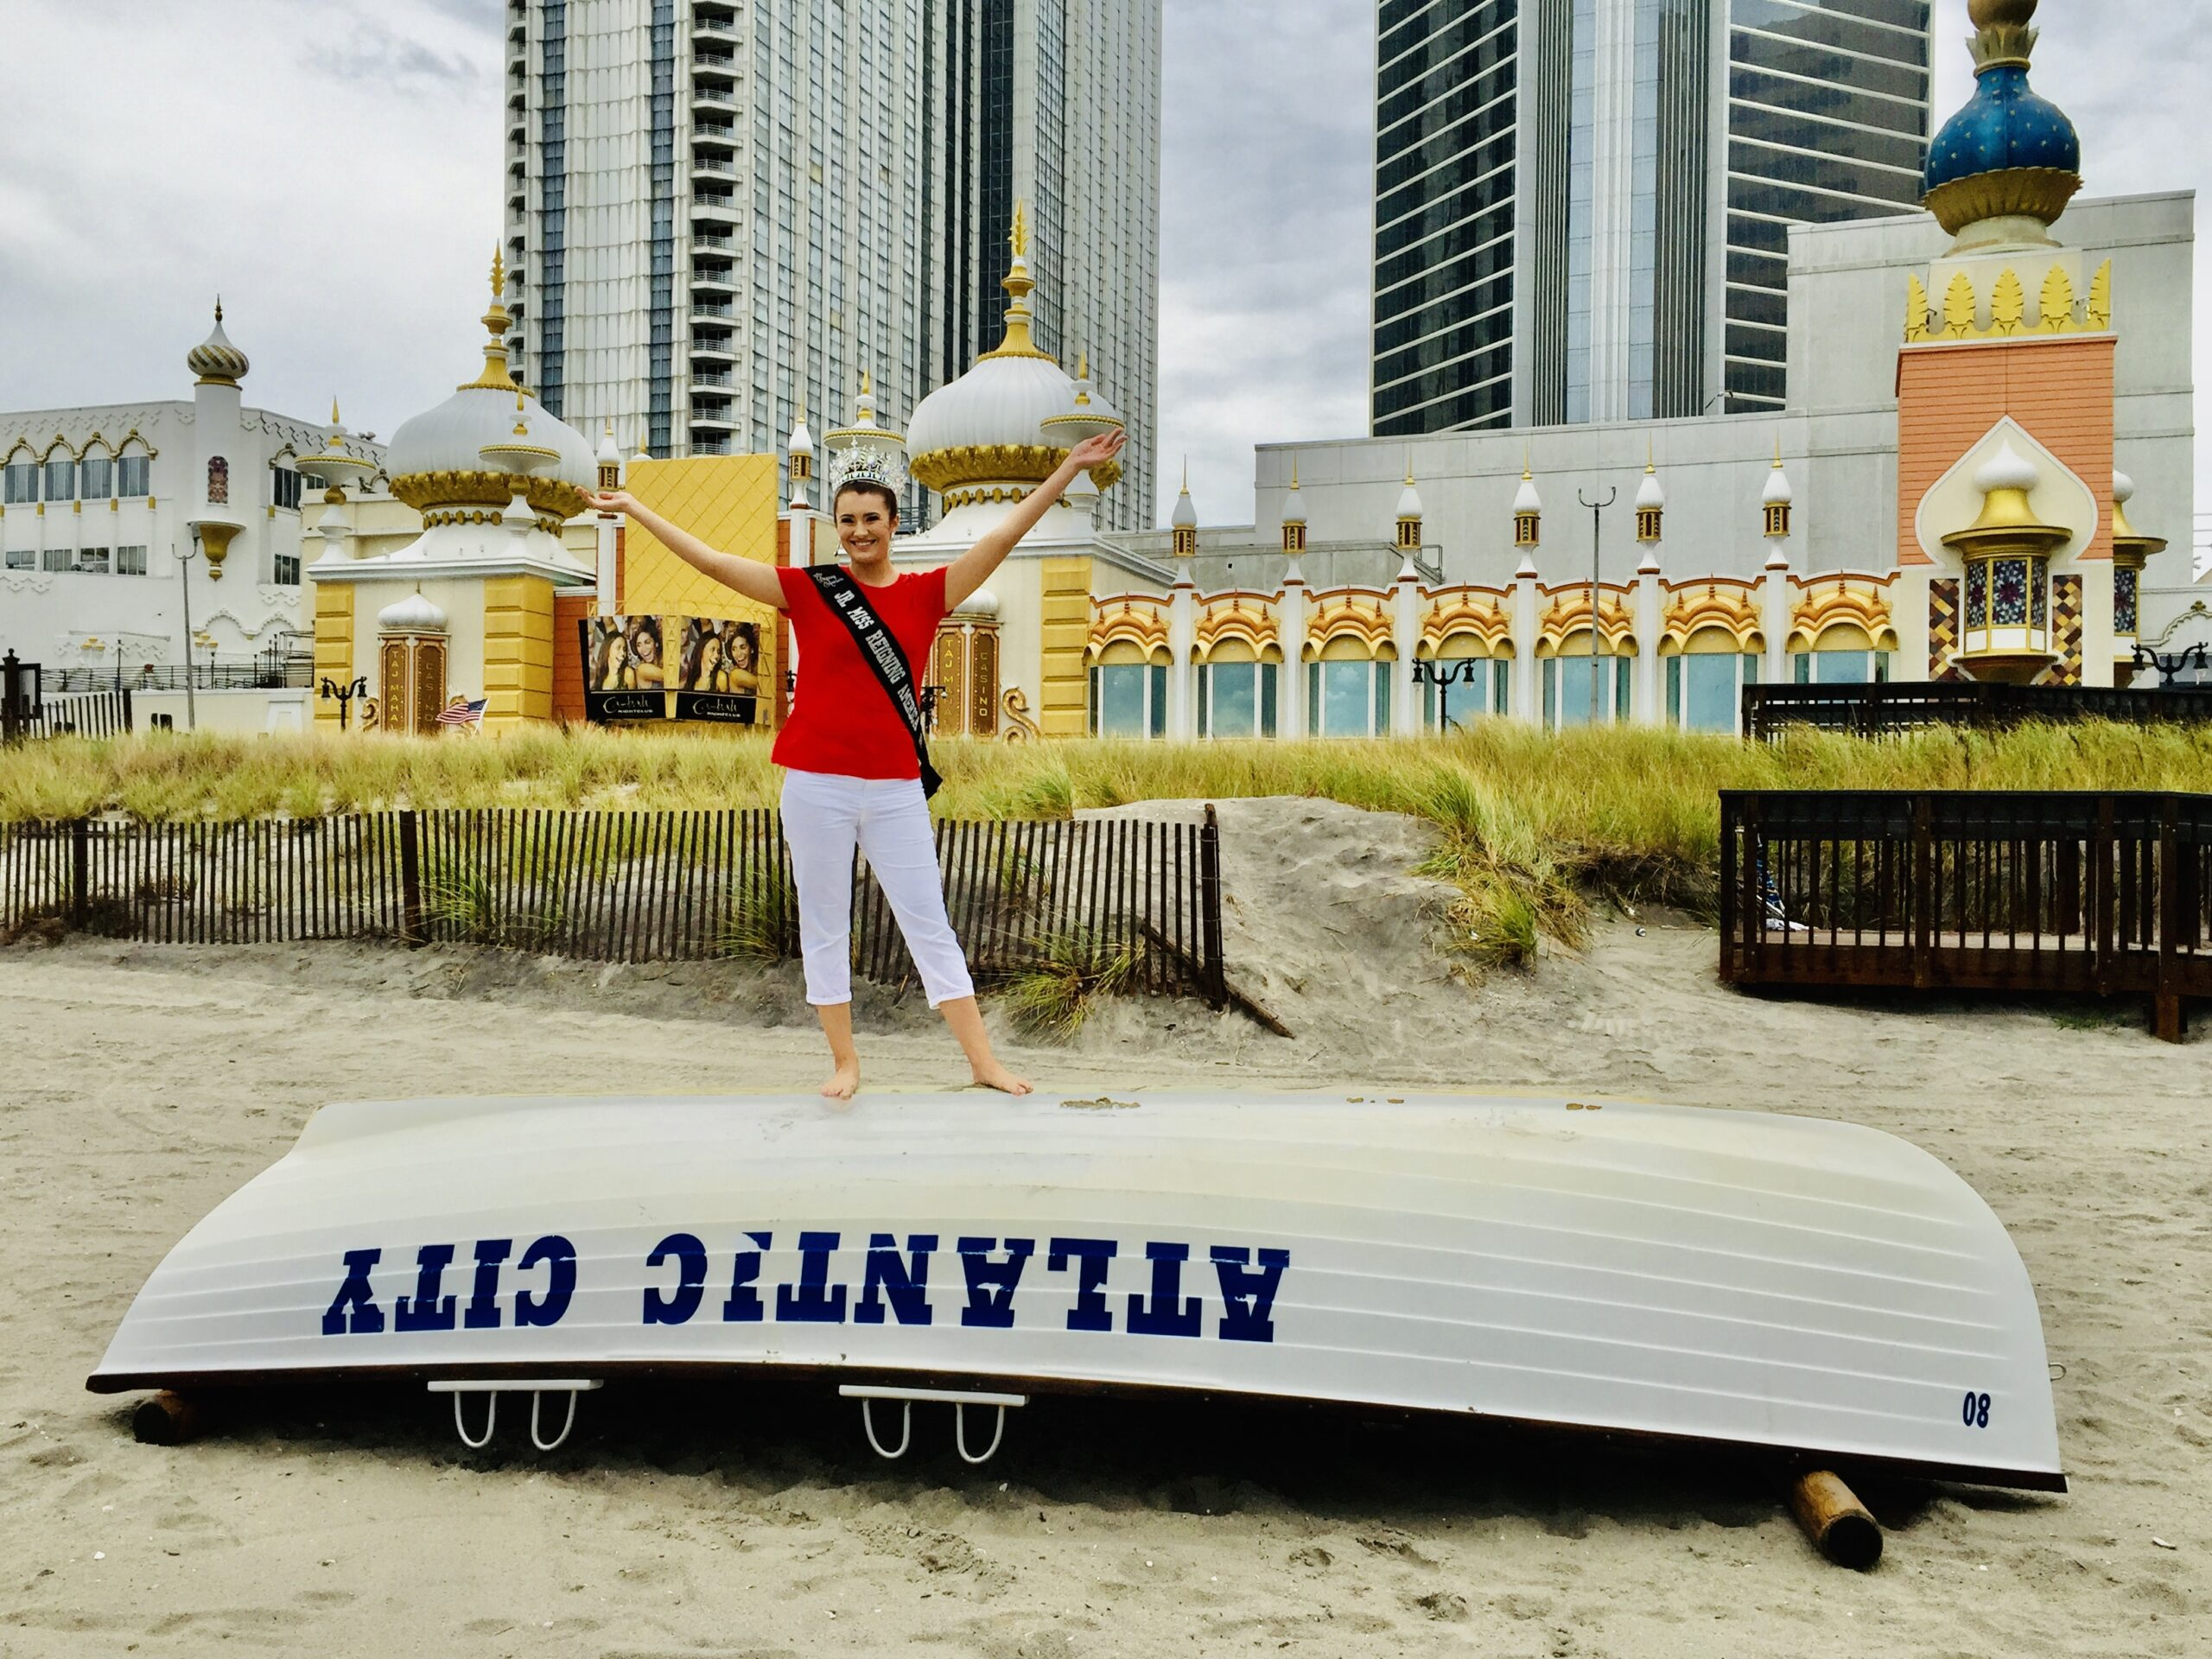 Find Your Way to Atlantic City